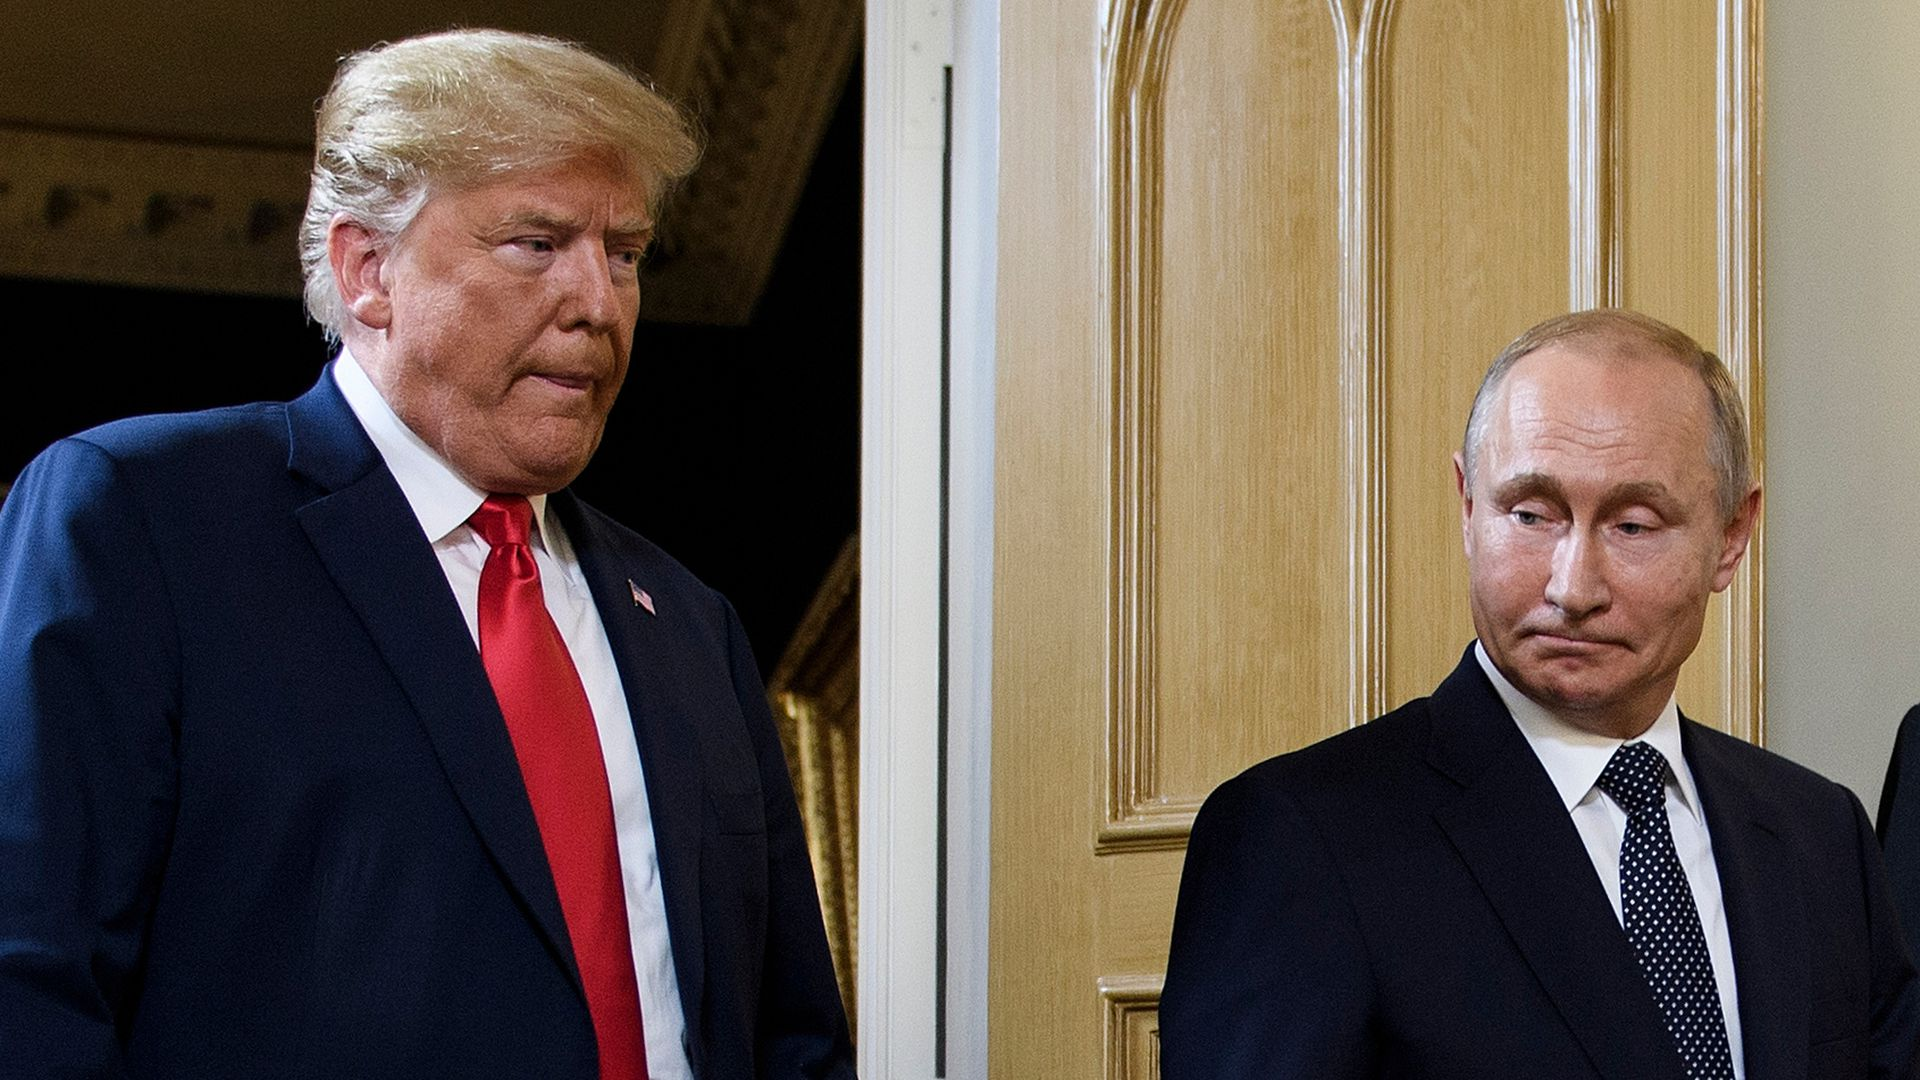 Trump and Putin standing next to each other